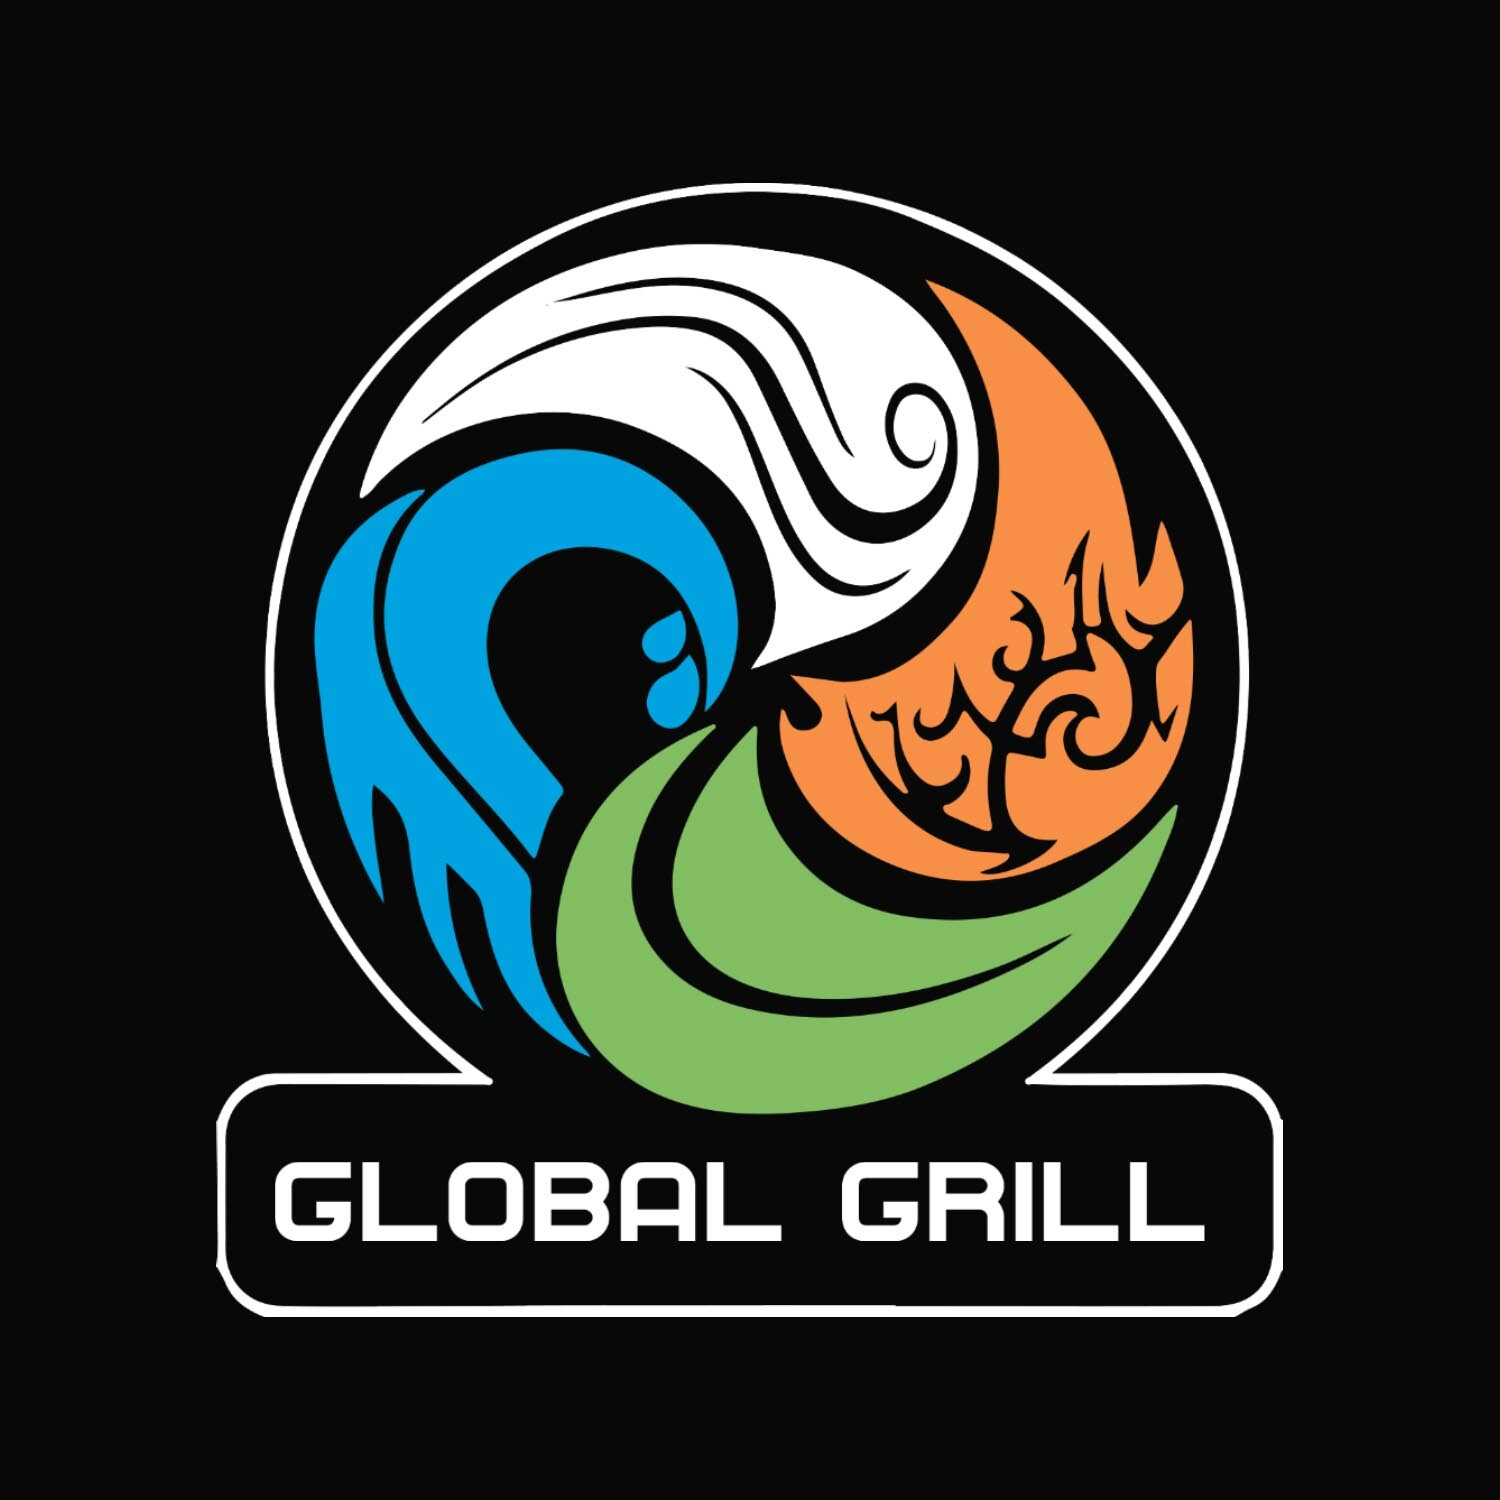 Global Grill